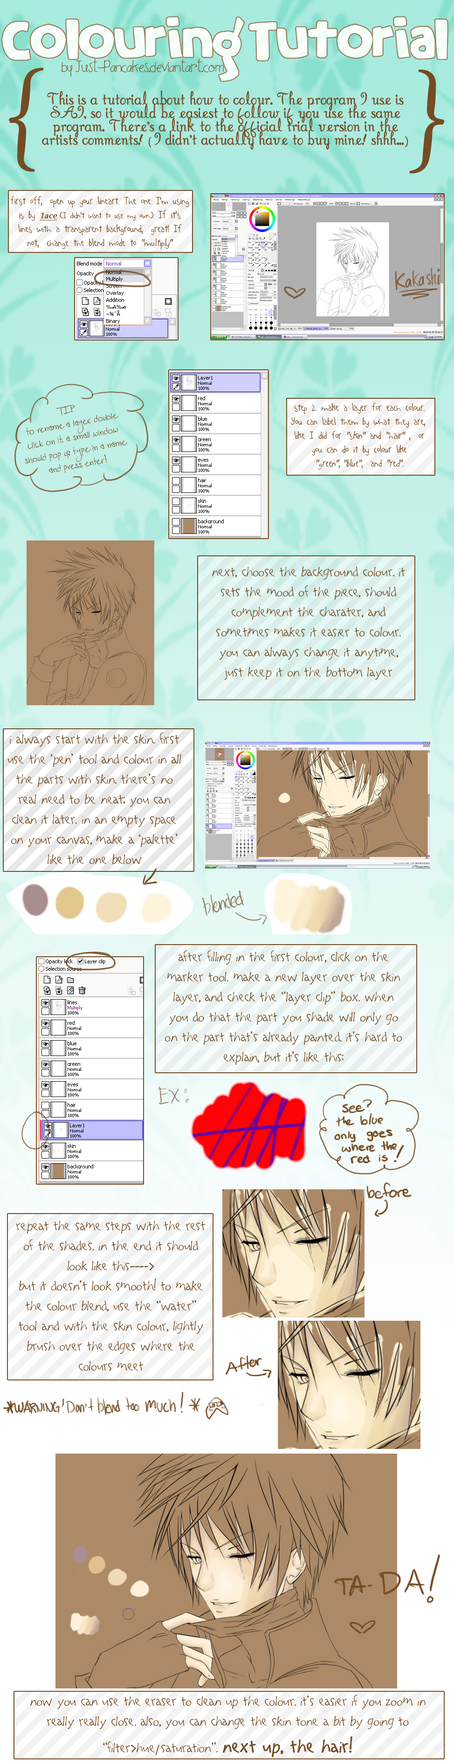 Colouring Tutorial Part 1 by joiachi